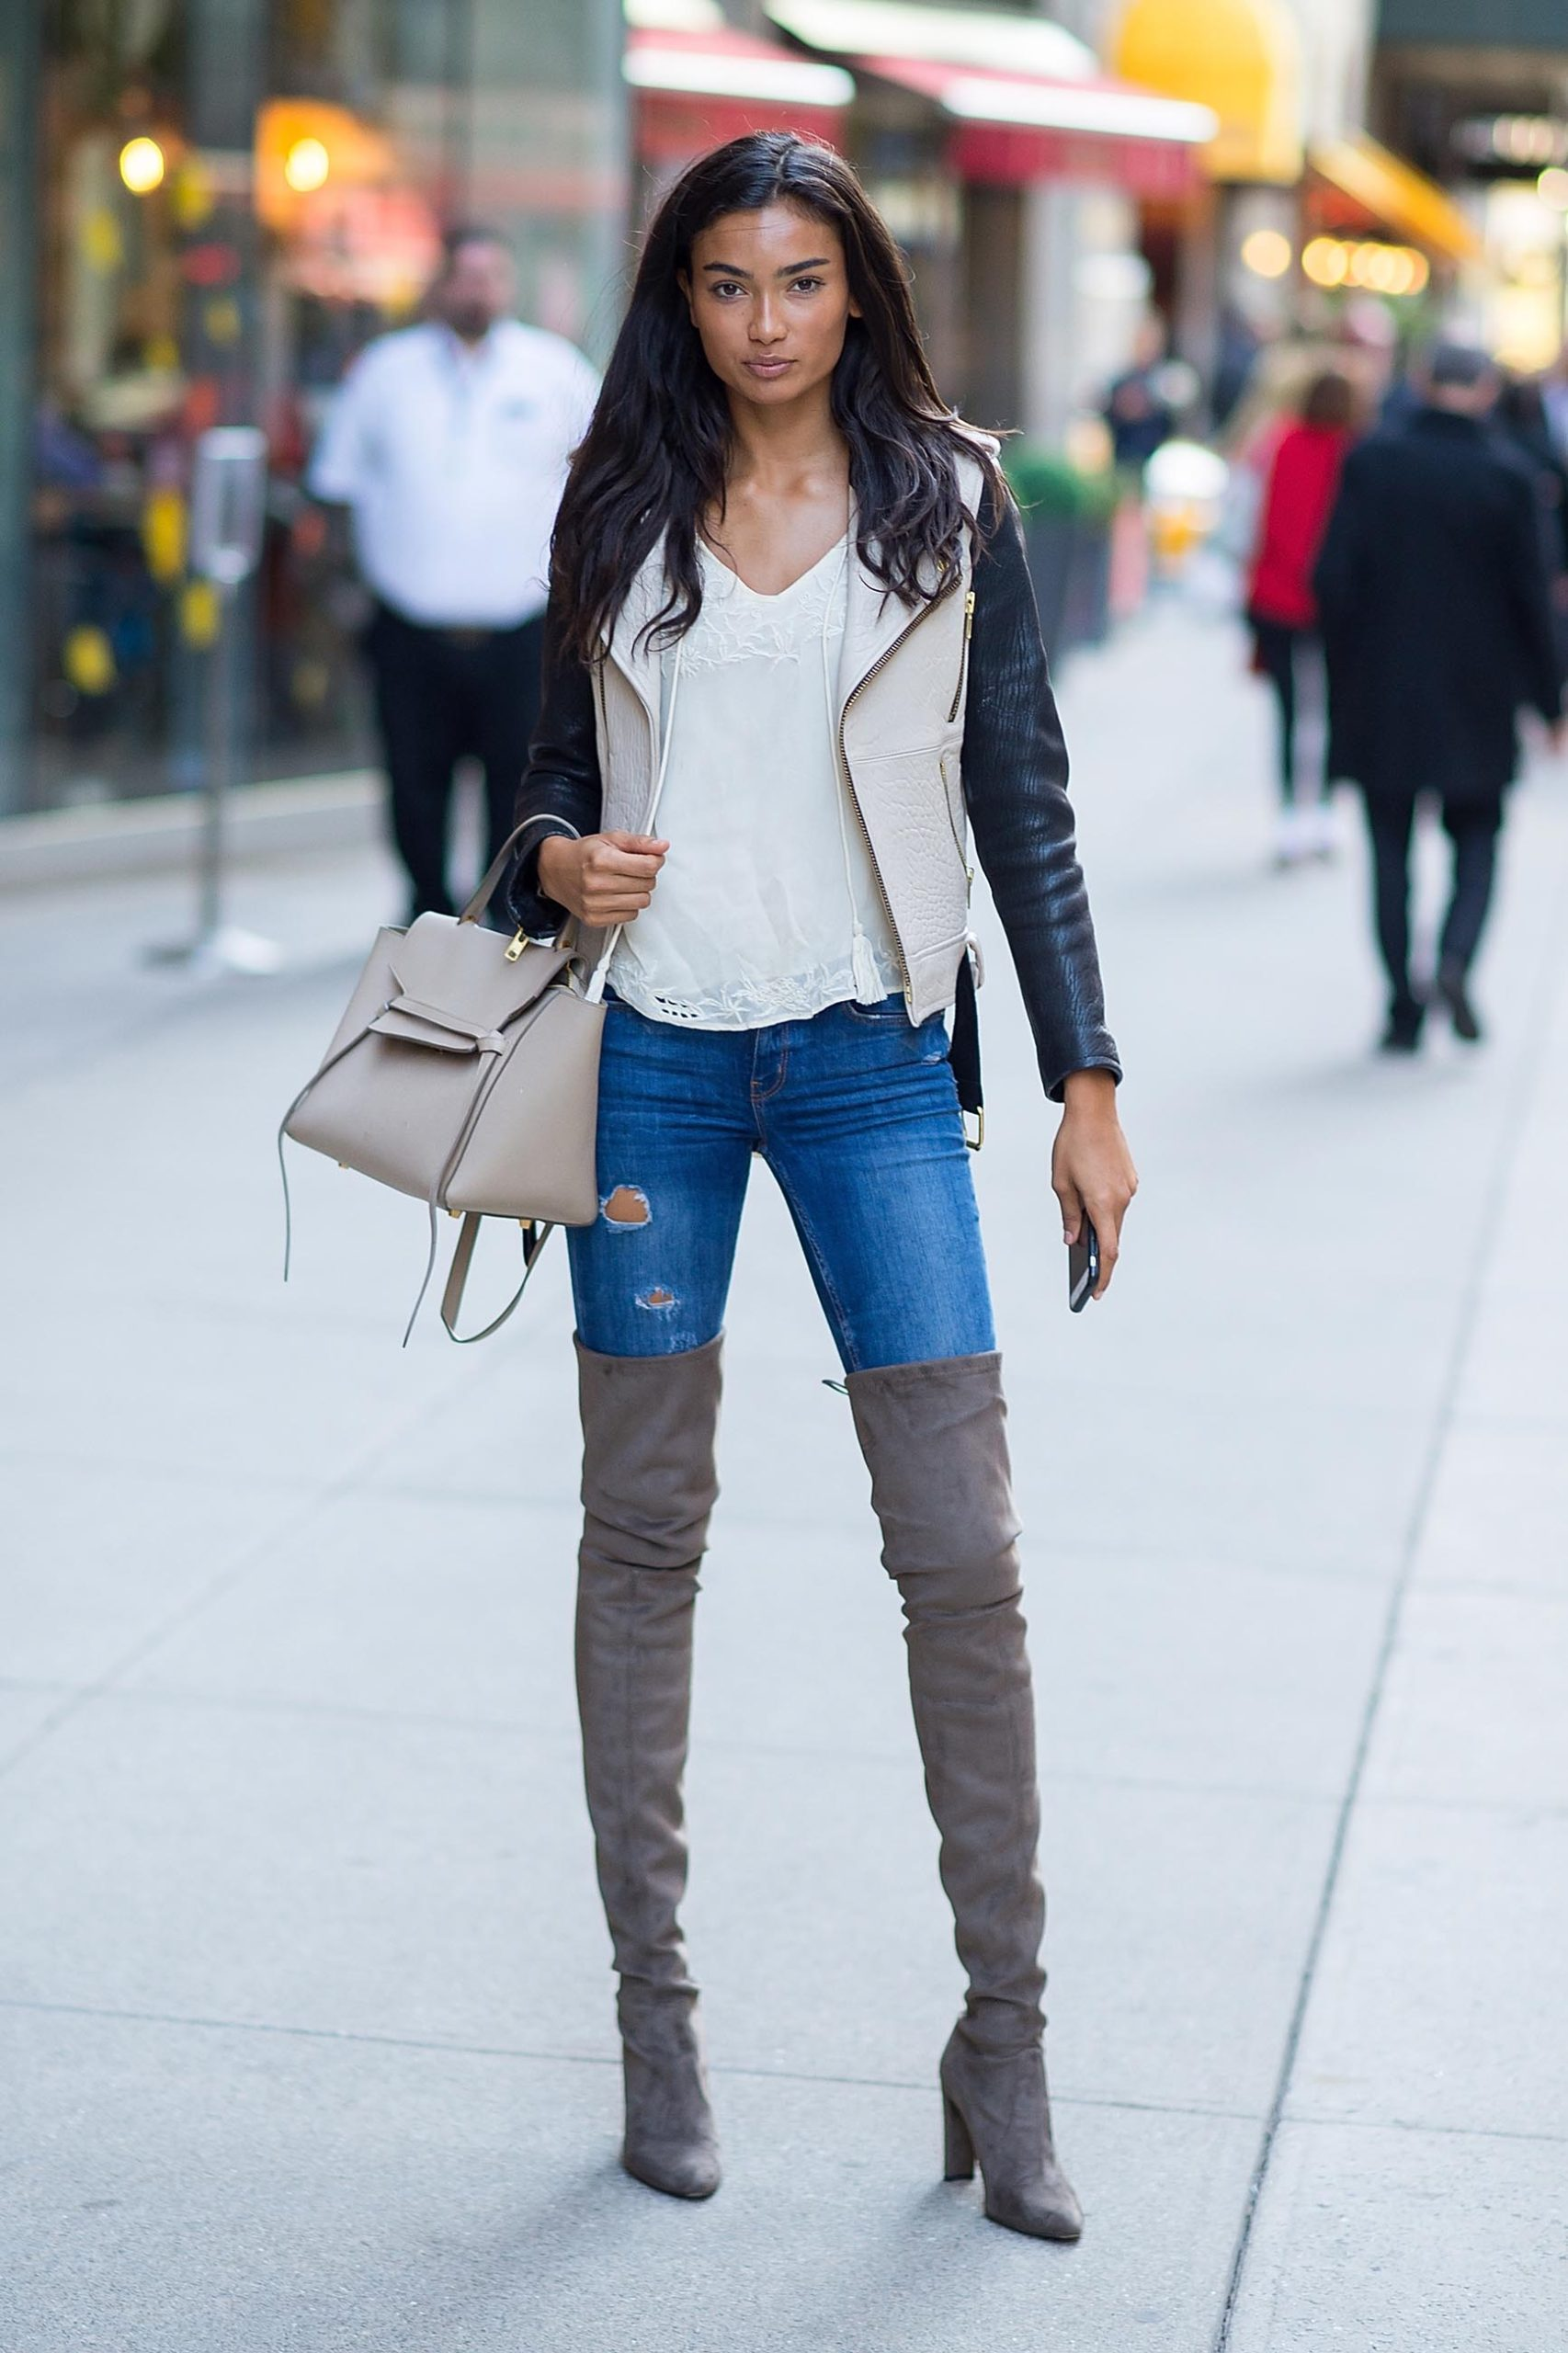 Kelly Gale Hot Jeans Style scaled - Kelly Gale Super Photos